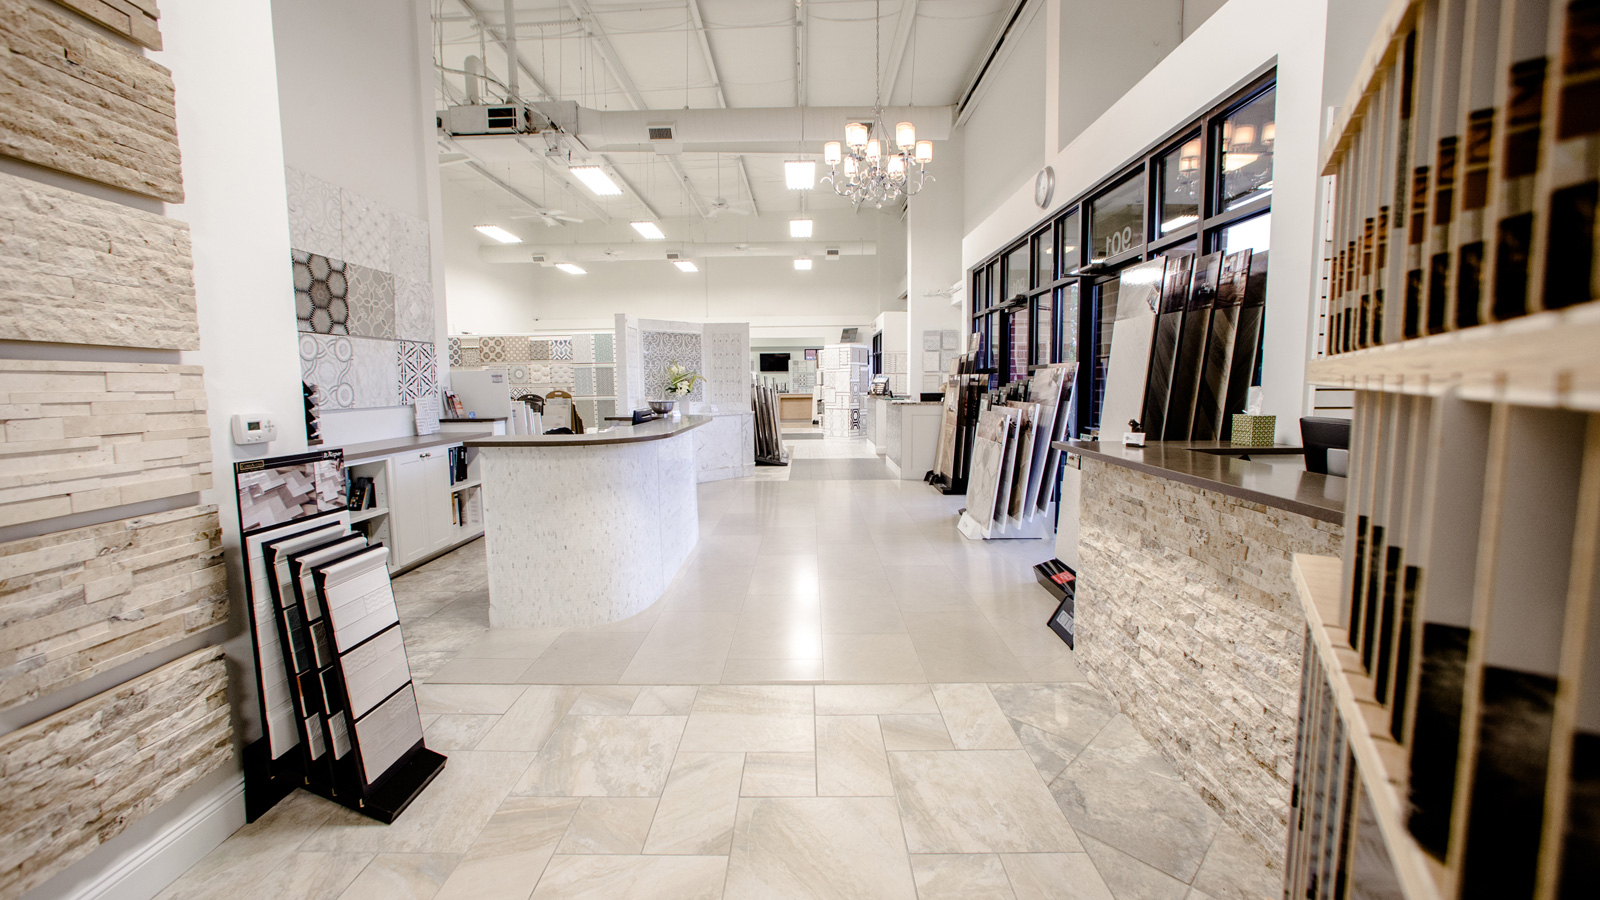 Bedrosians Tile and Stone | Discount Tile Denver | Triangle Tile and Stone